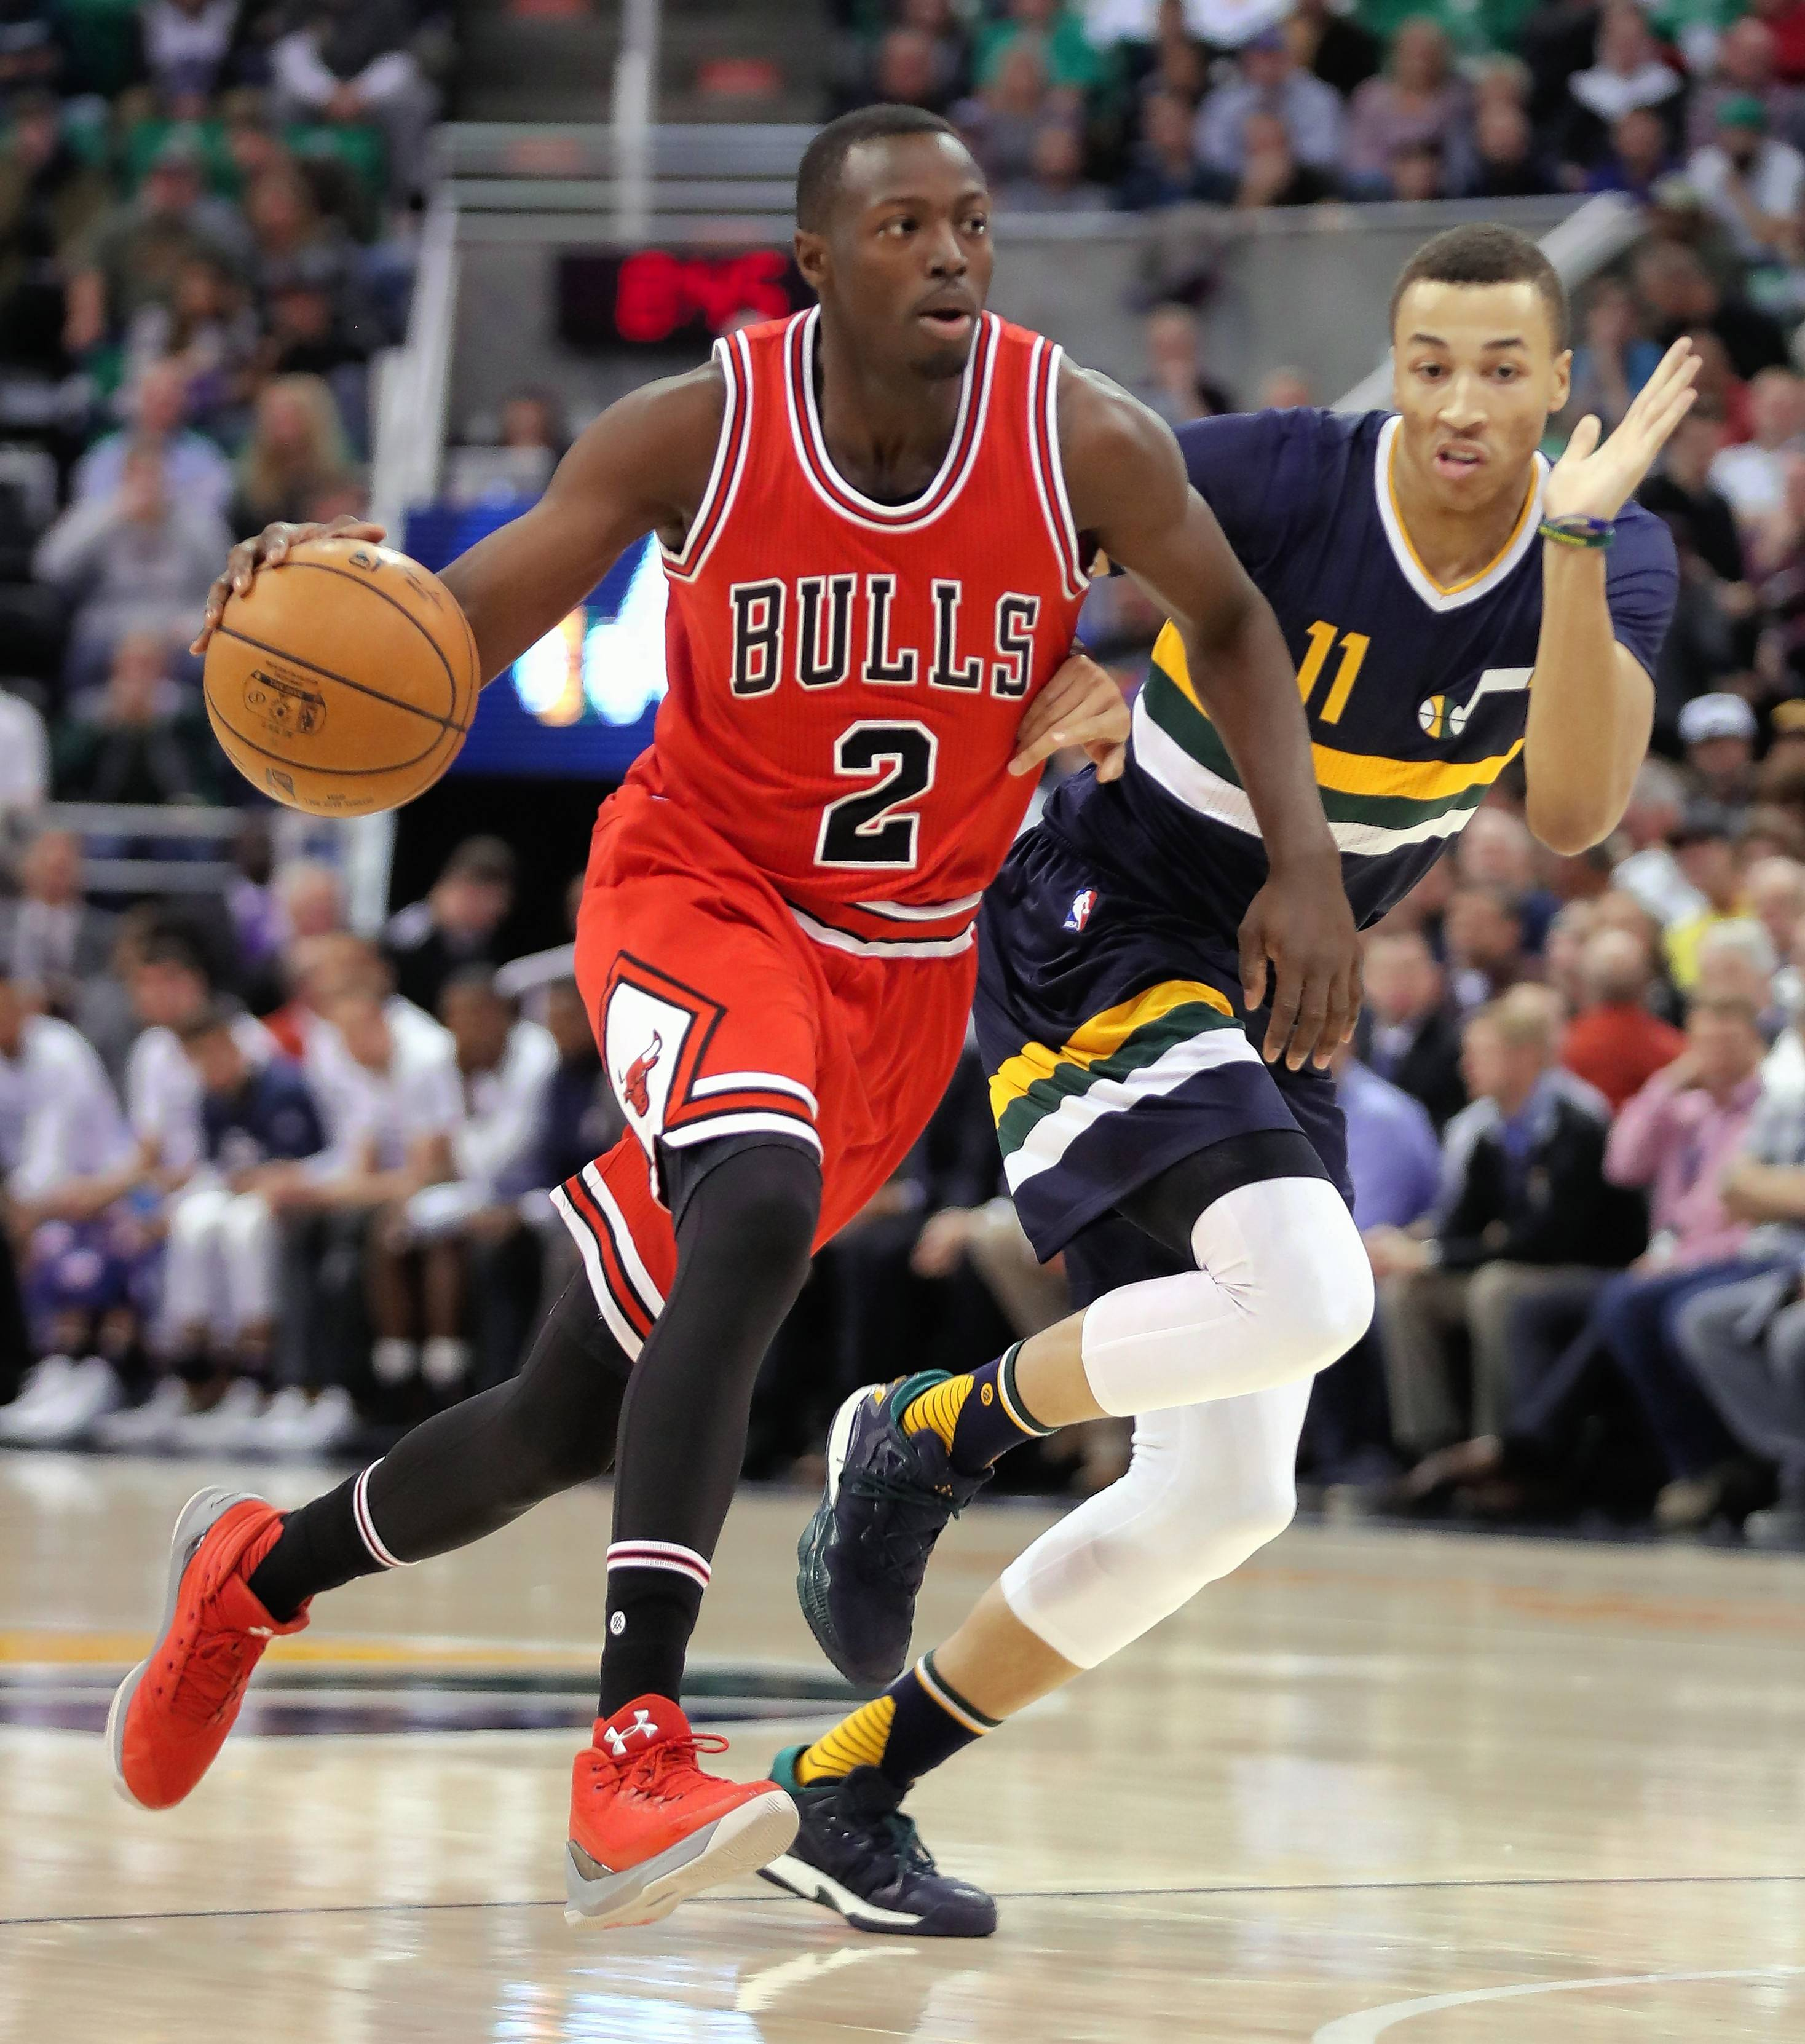 Chicago Bulls guard Jerian Grant is expected to play for the Windy City Bulls tonight. Grant had 34 points in a D-League game earlier this season.